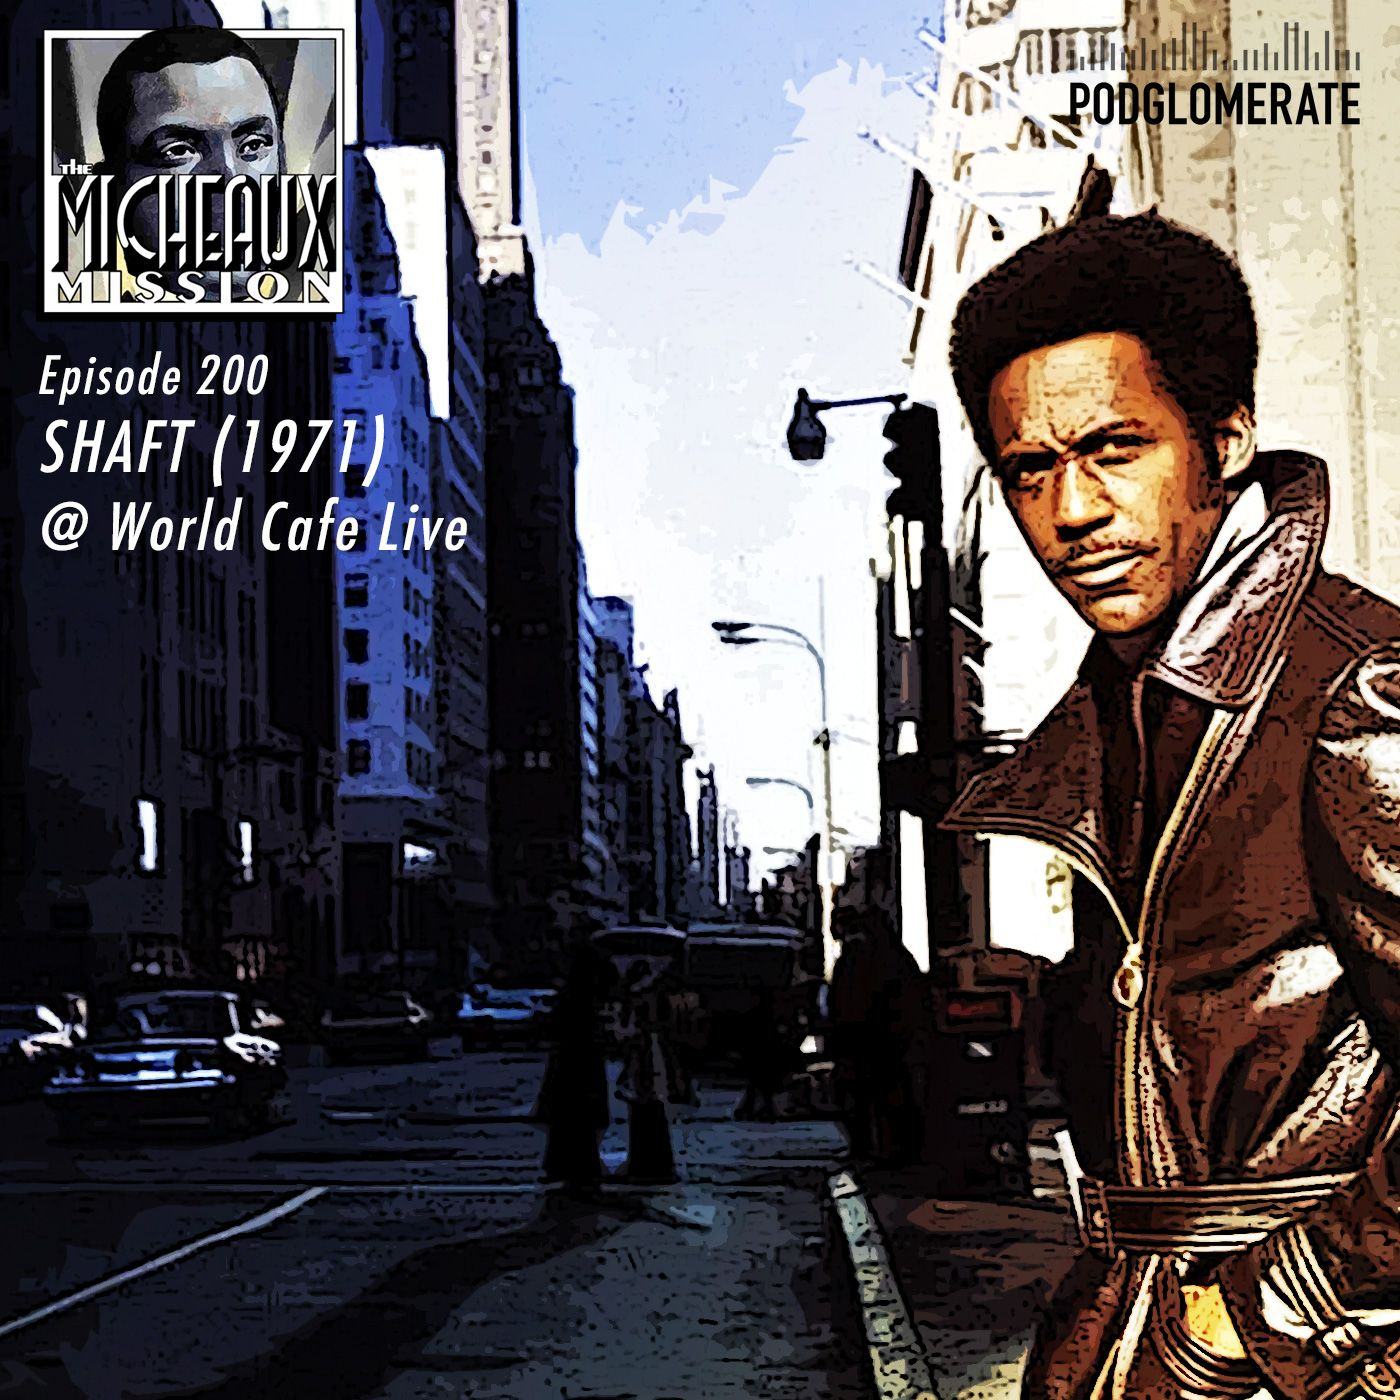 Shaft (1971) @ World Cafe Live